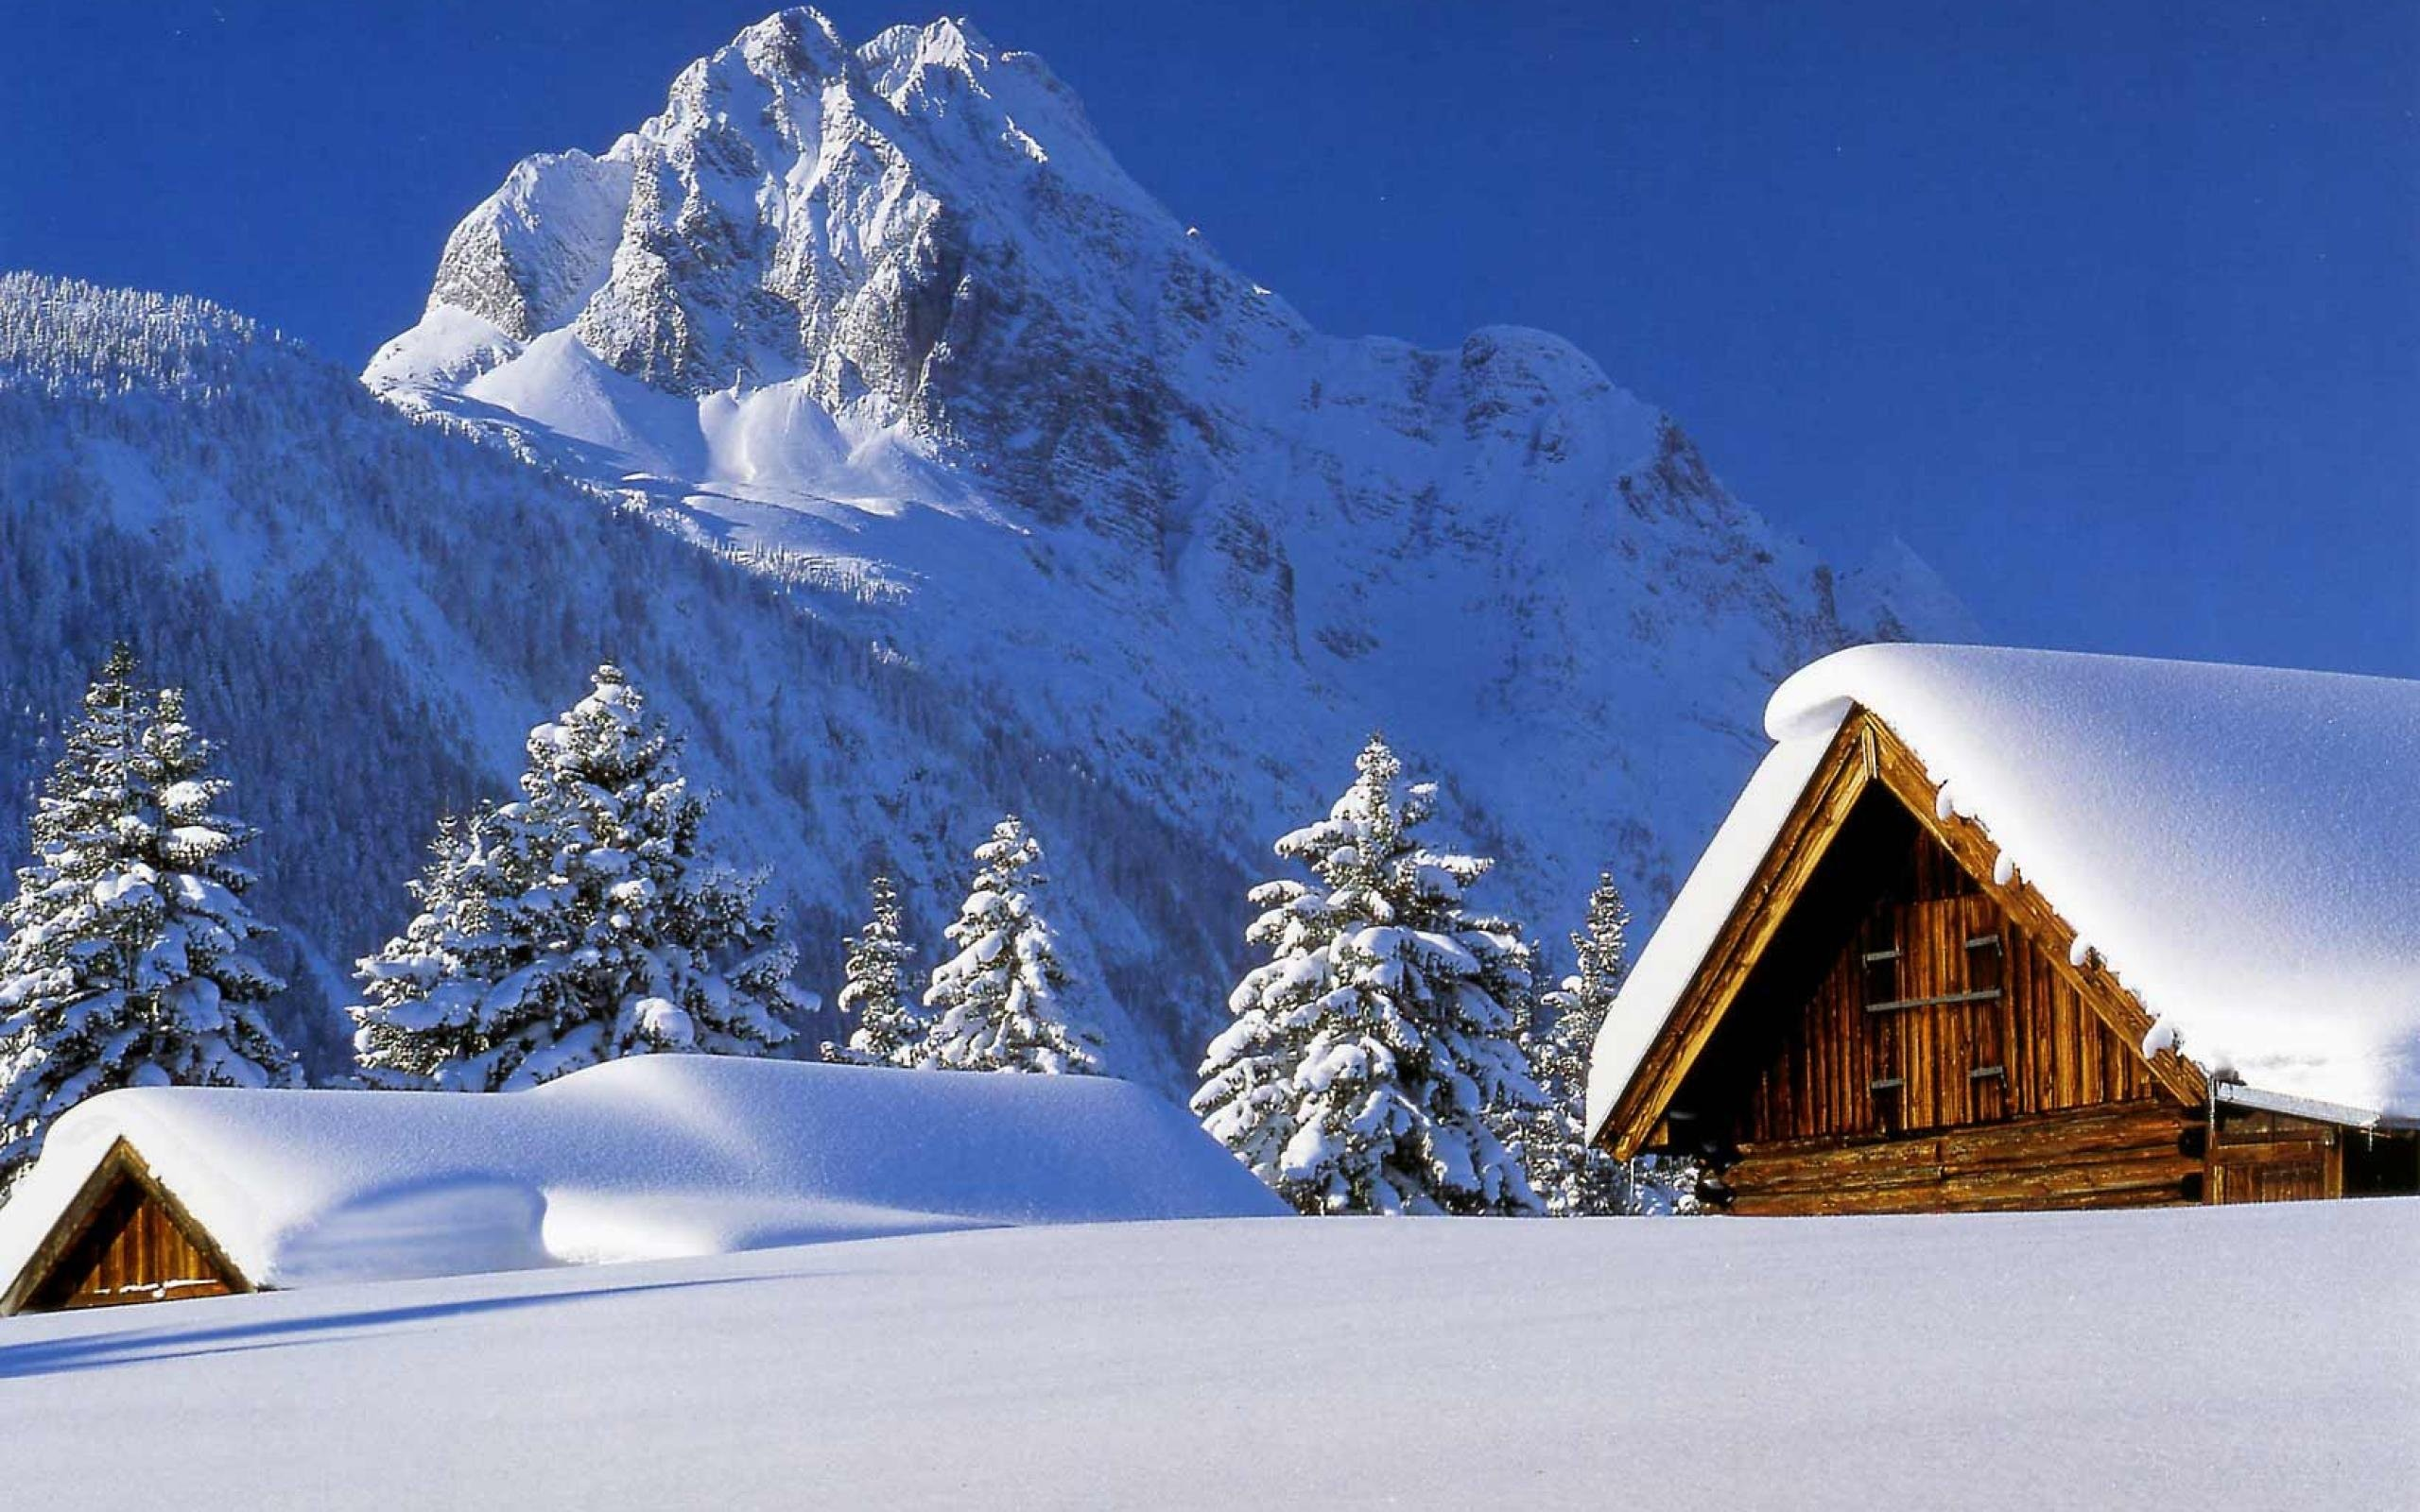 Winter Season Wallpapers One HD Wallpaper Pictures Backgrounds 2560×1600